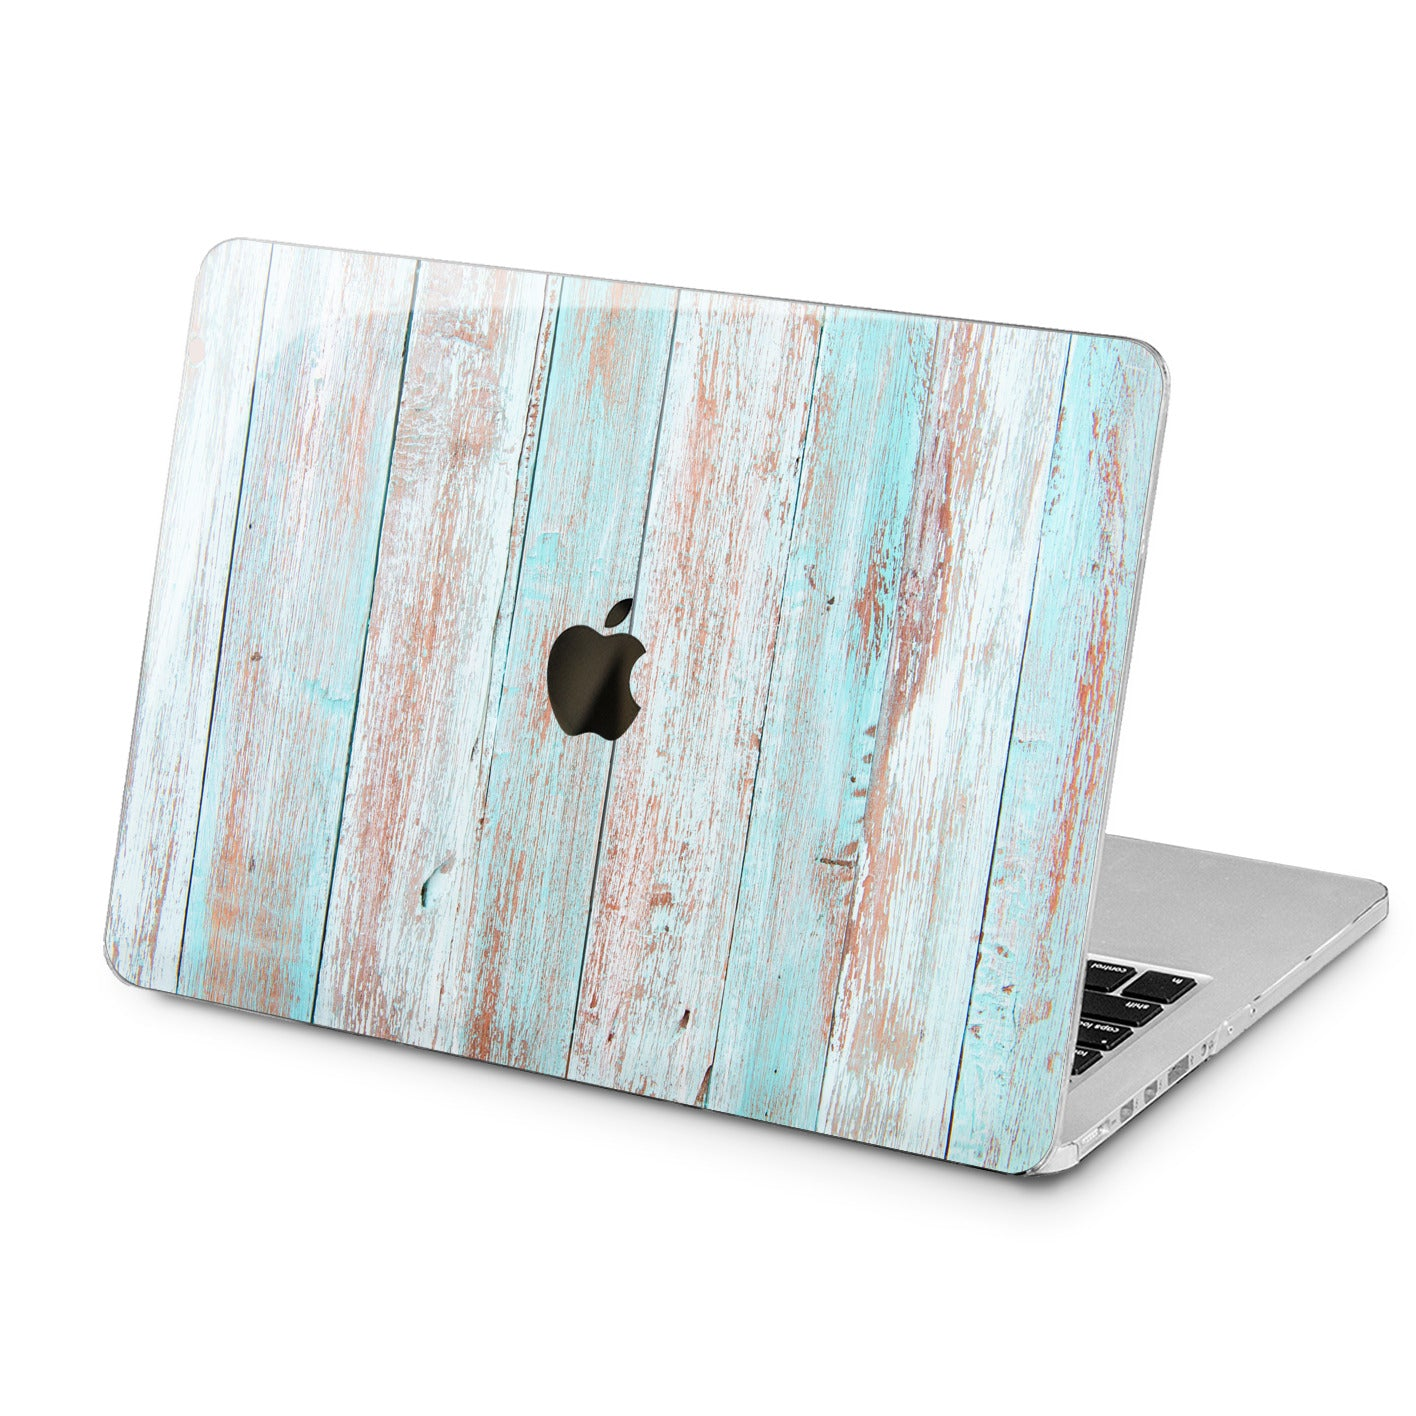 Lex Altern Lex Altern White Loft Design Case for your Laptop Apple Macbook.